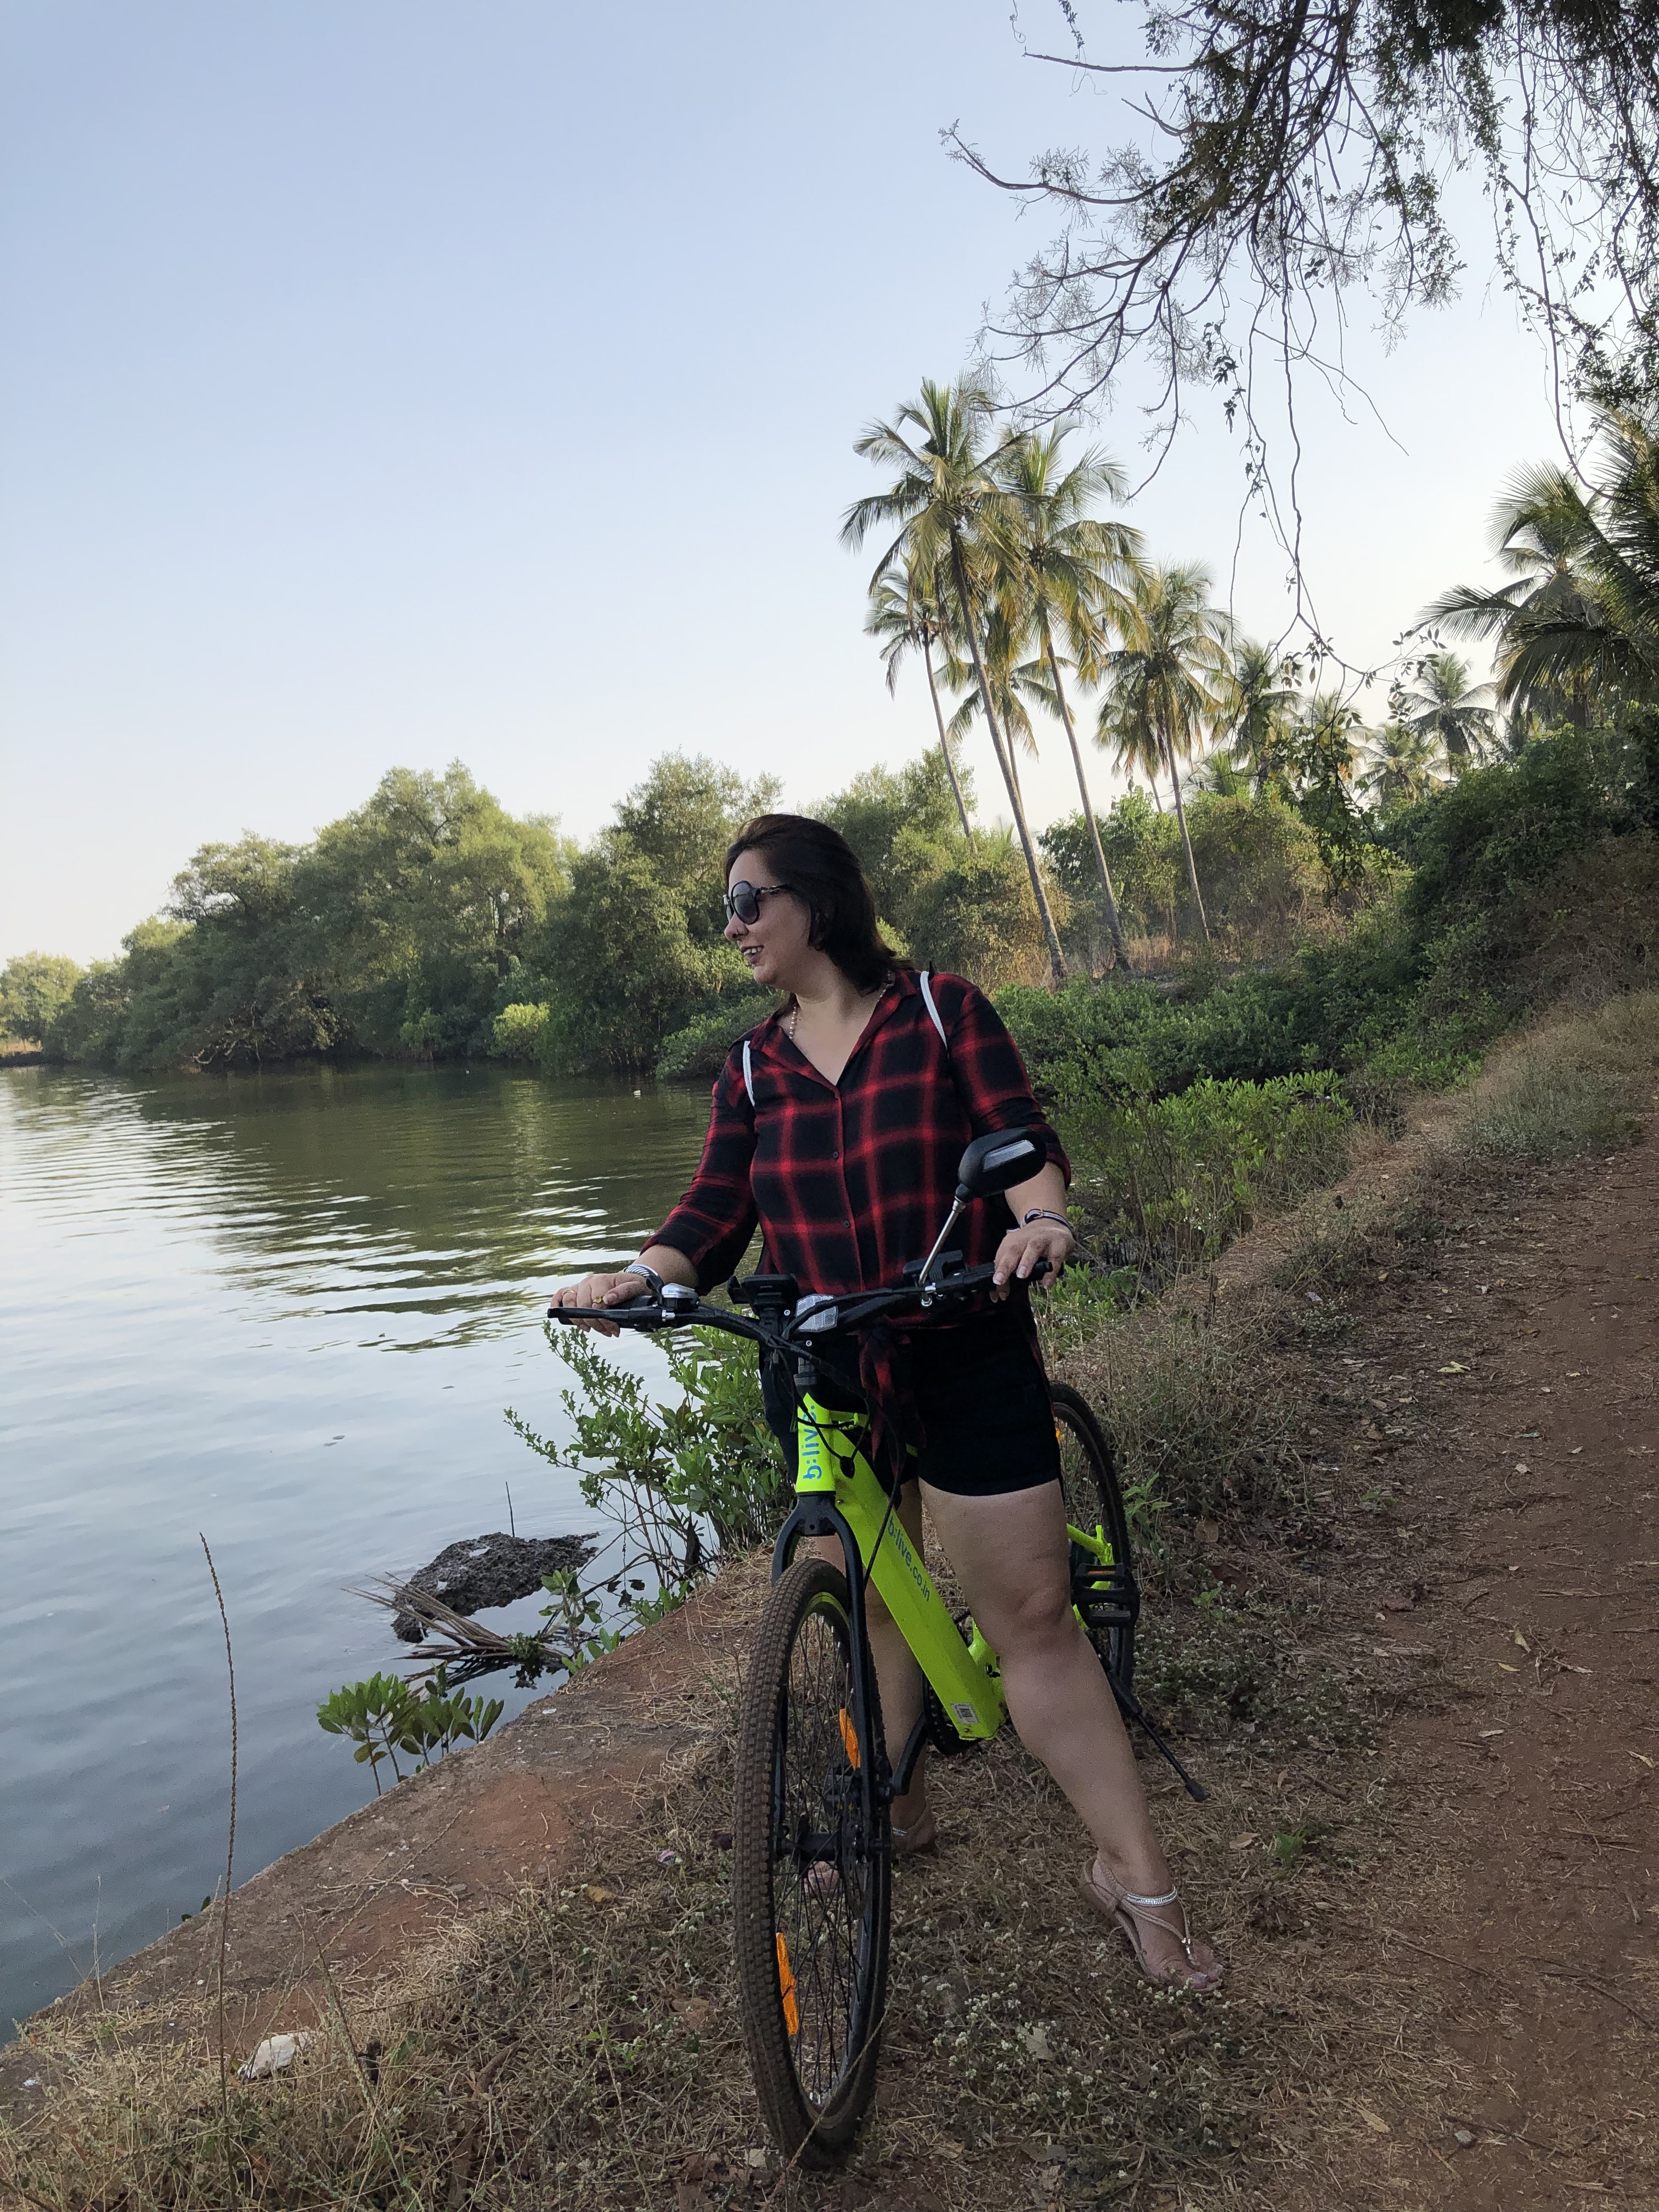 5 Reasons Why Exploring Divar Islands With Blive E-Bikes Is A Great Idea